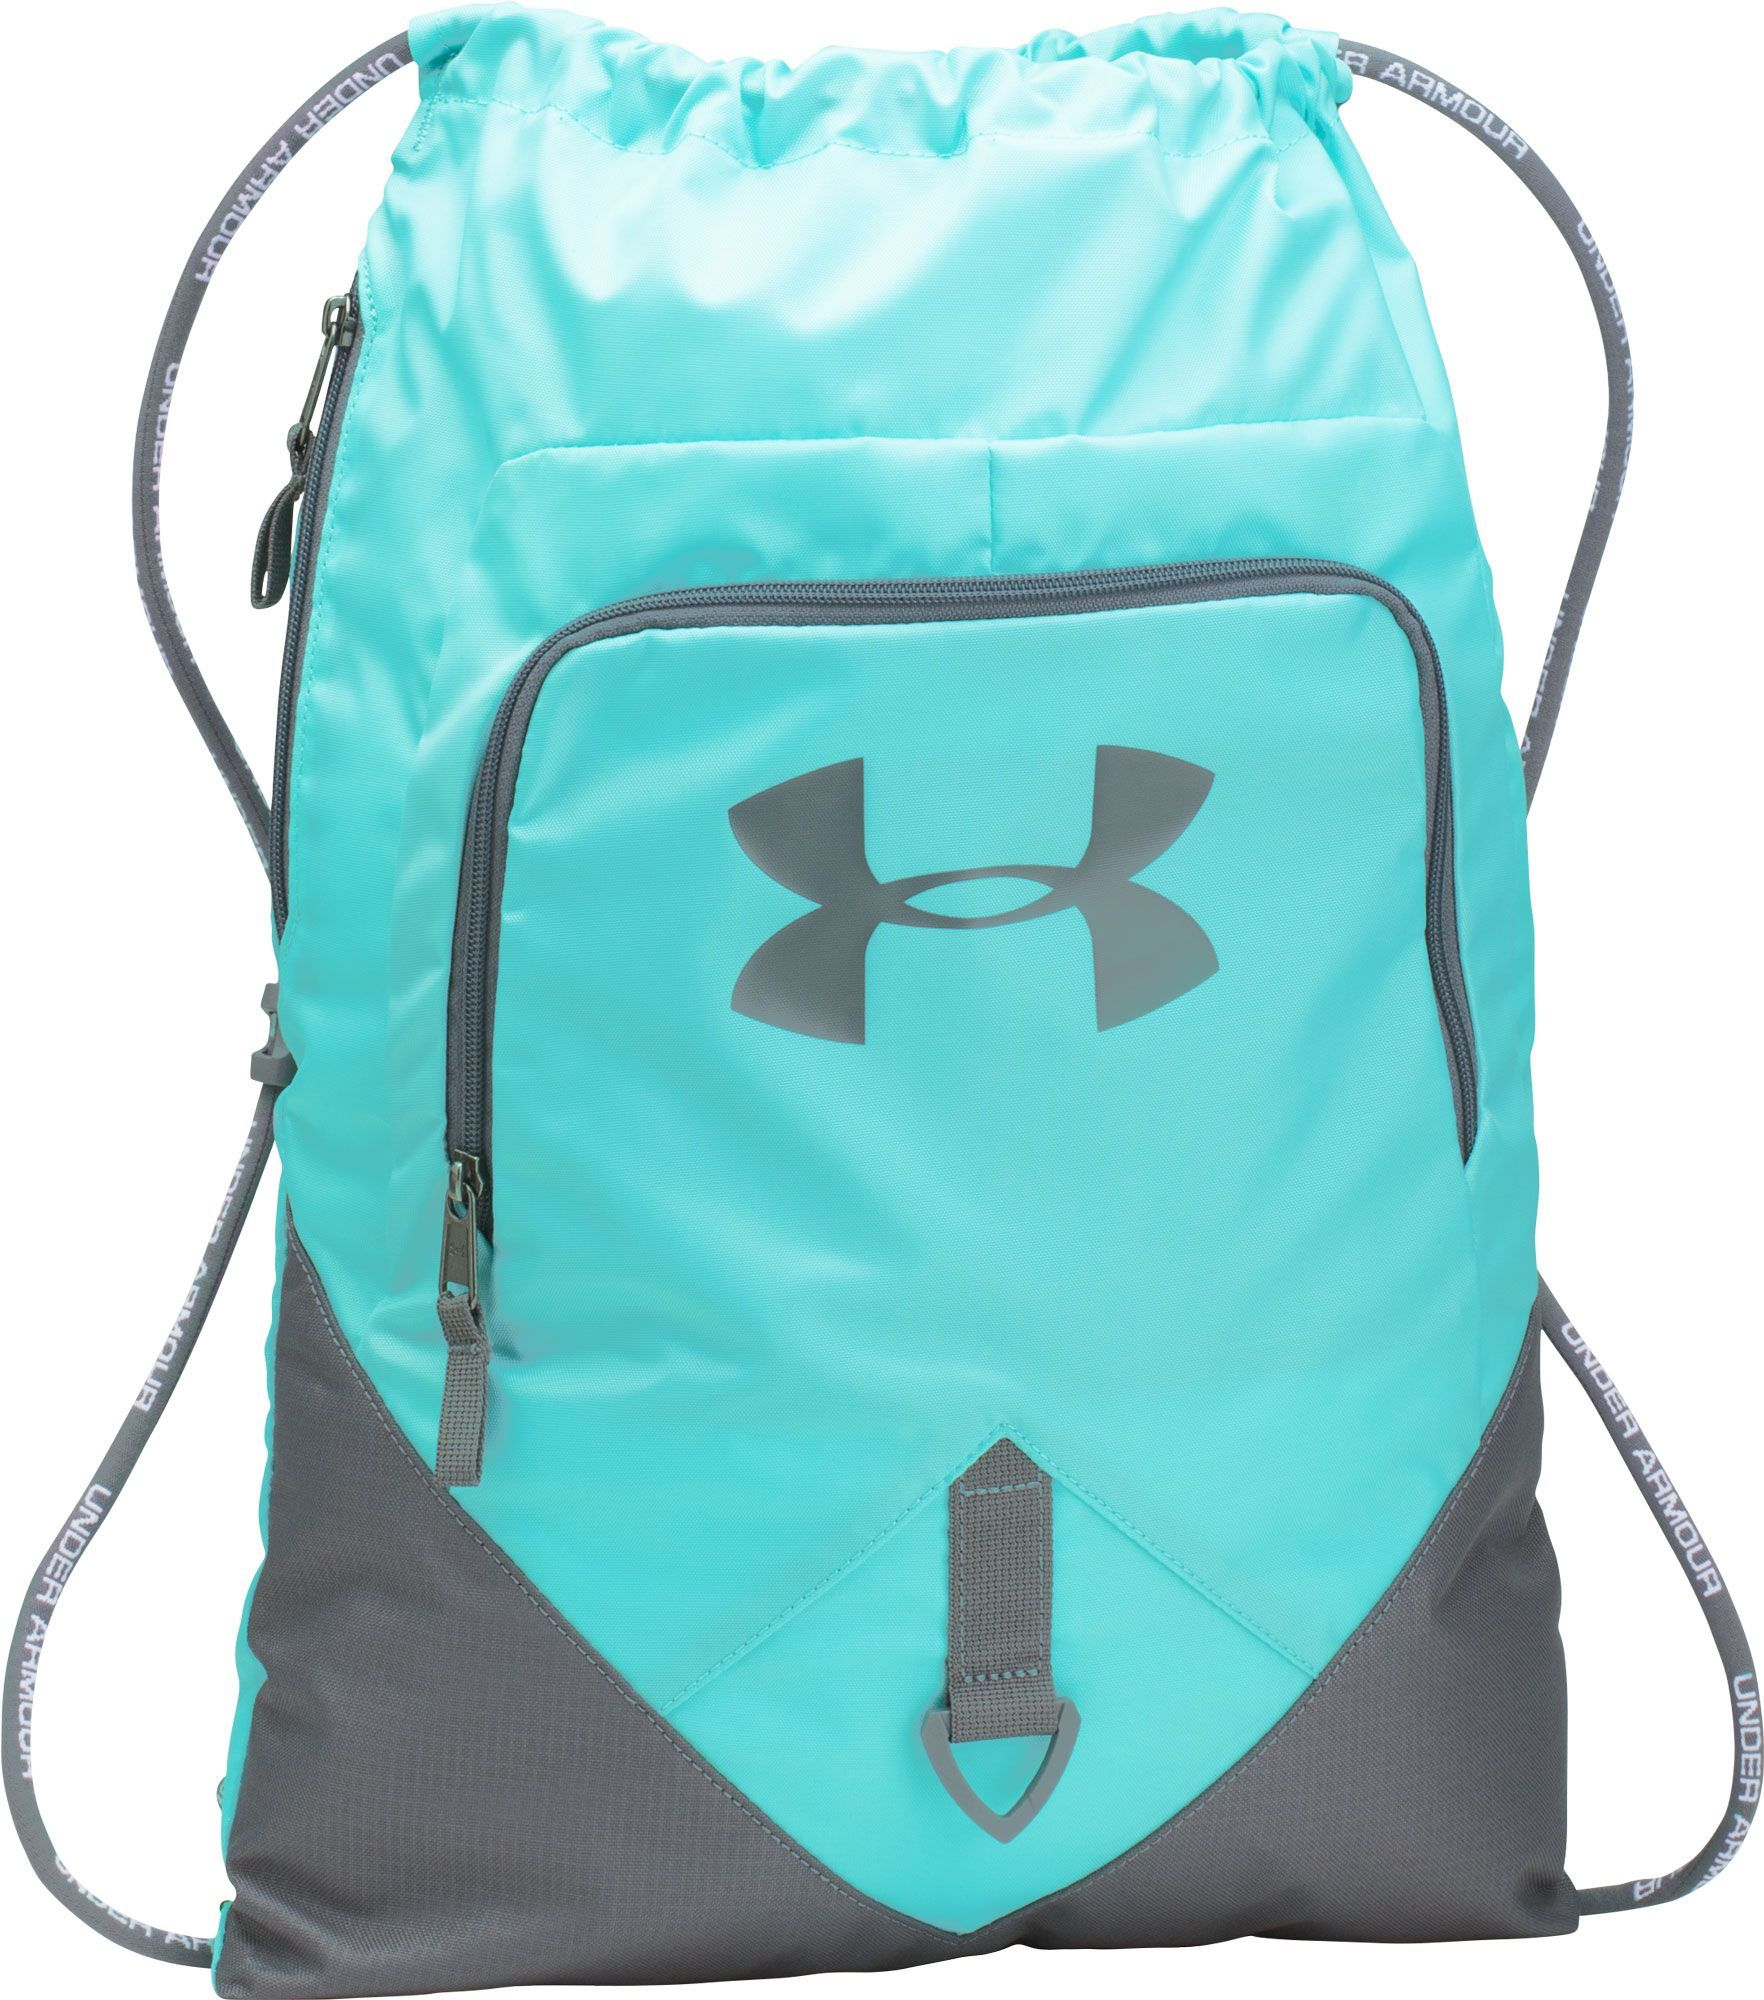 dcc5016dcba2 Under Armour Undeniable Sackpack in 2019 | Products | Under armour ...